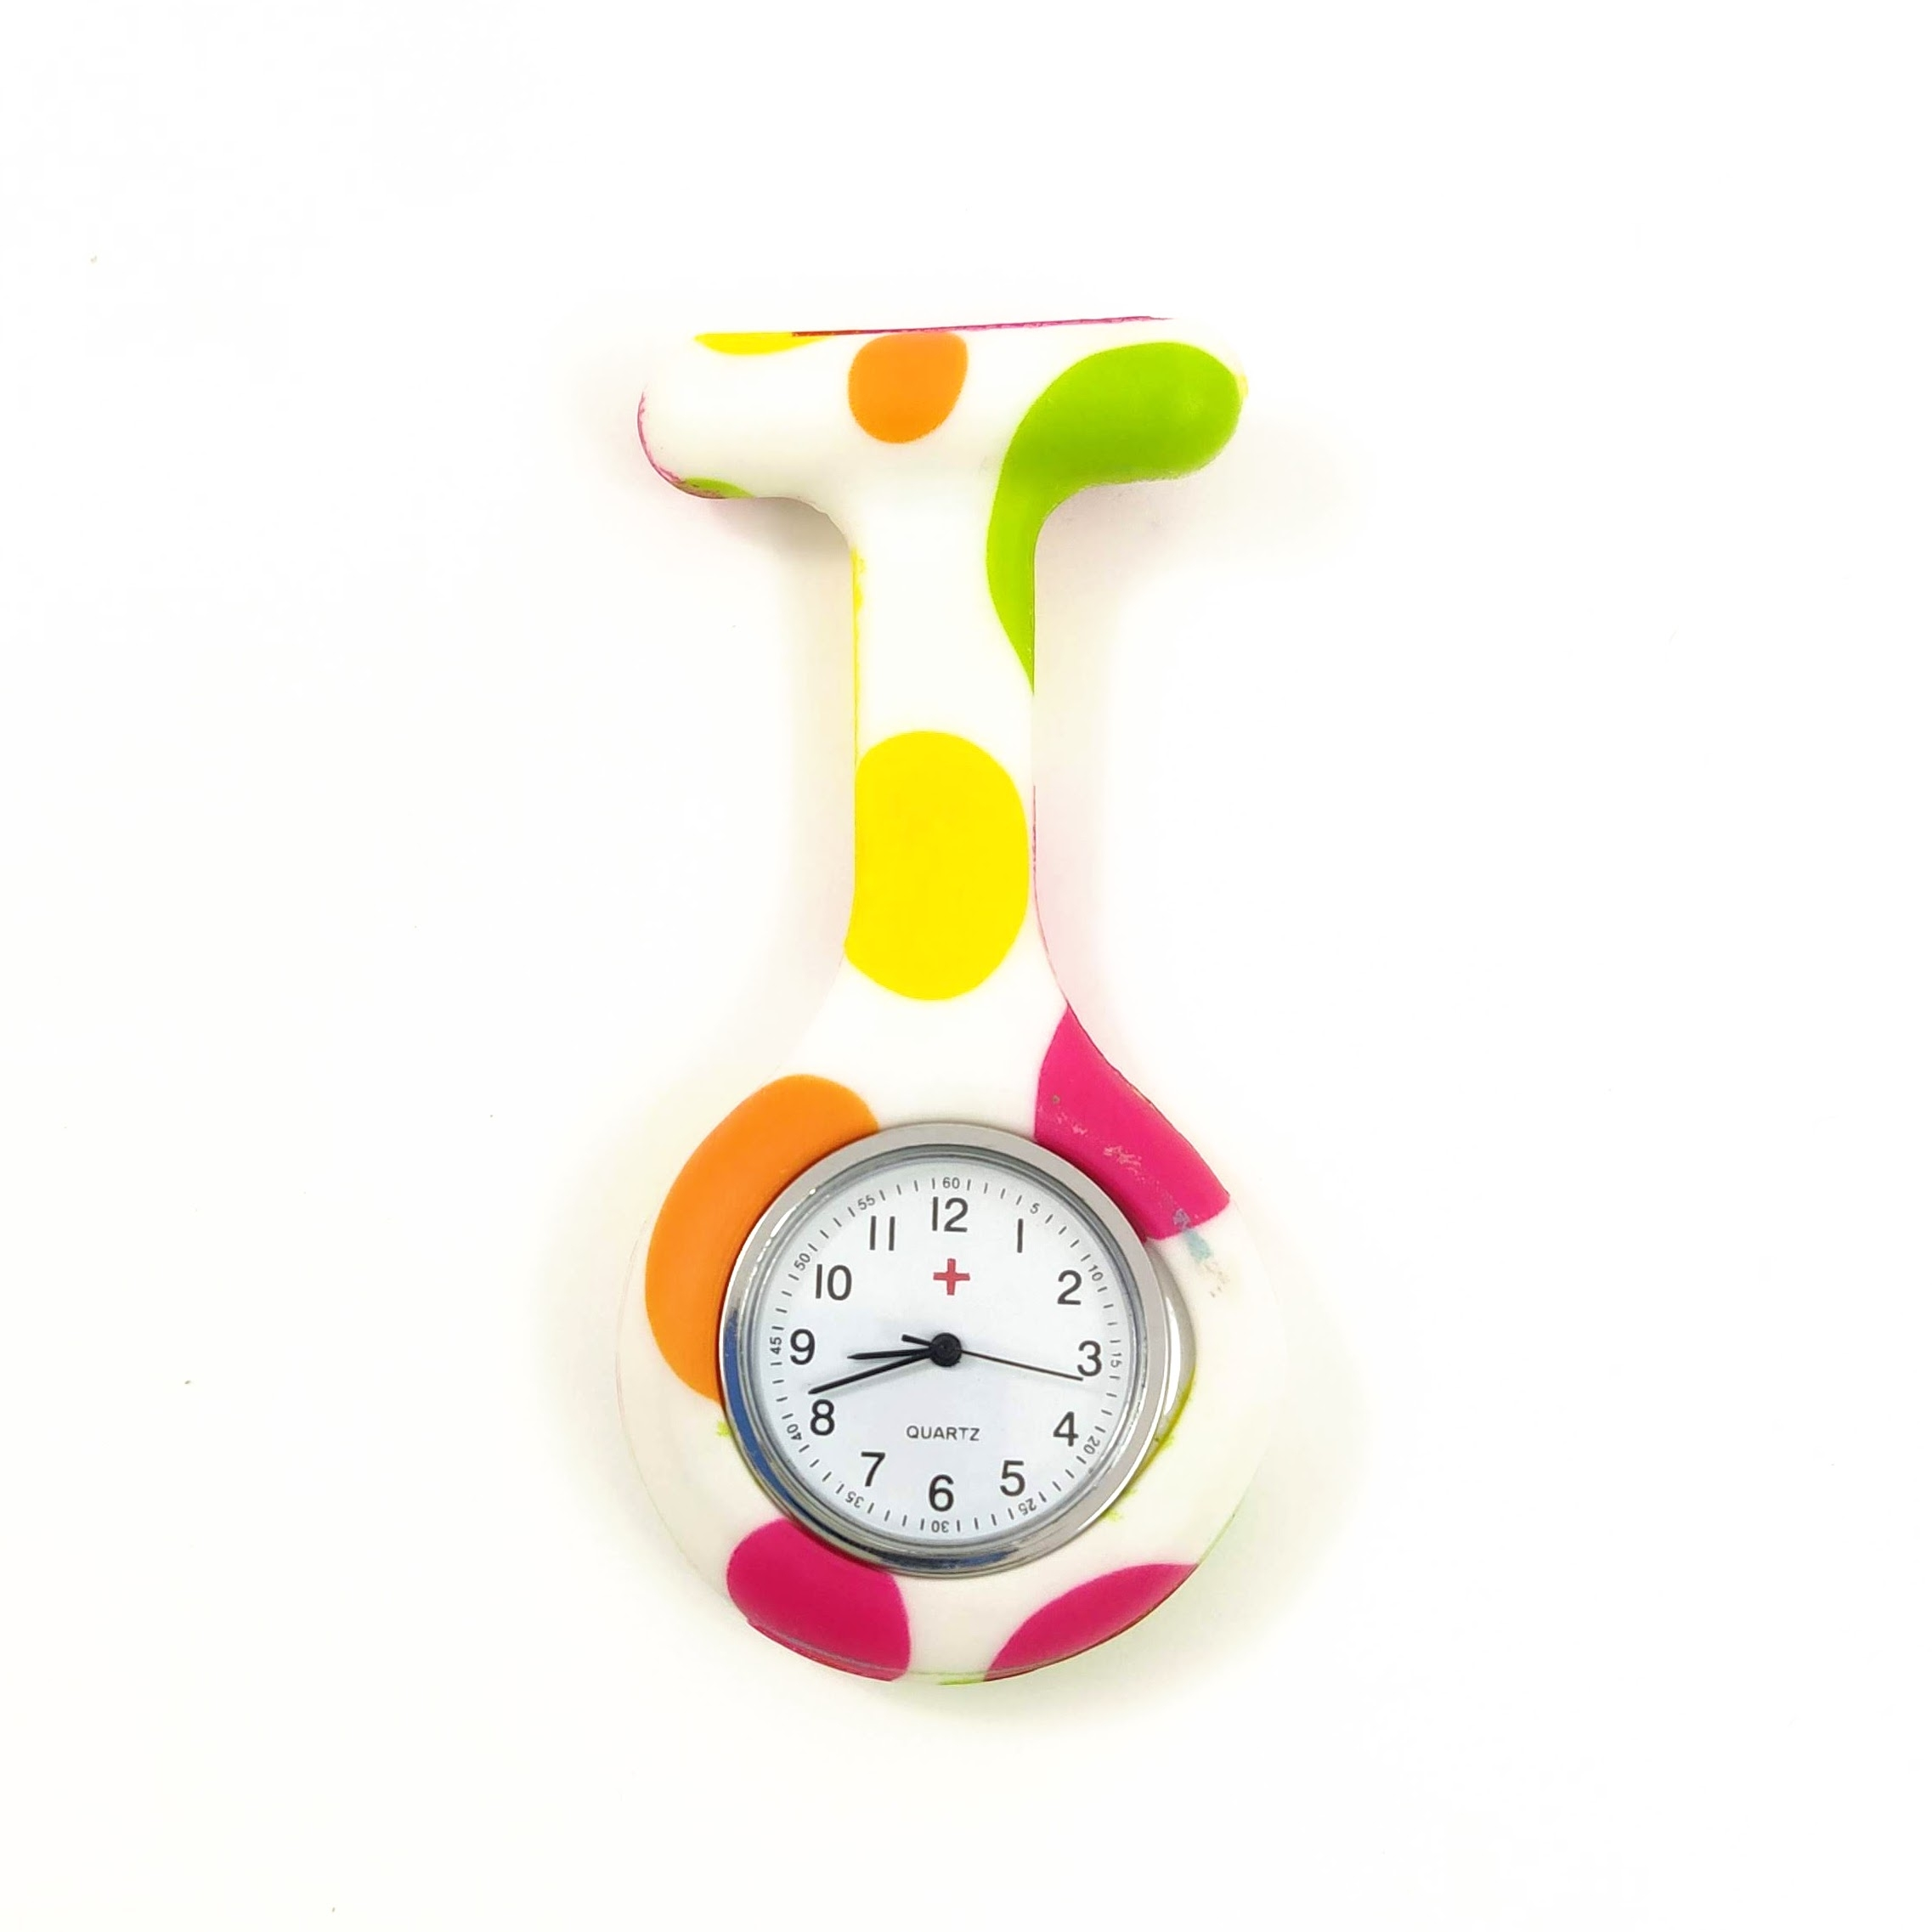 Watch Off Nurse Gift Original Fashion With Collar Pin For Baby Original Cleaners